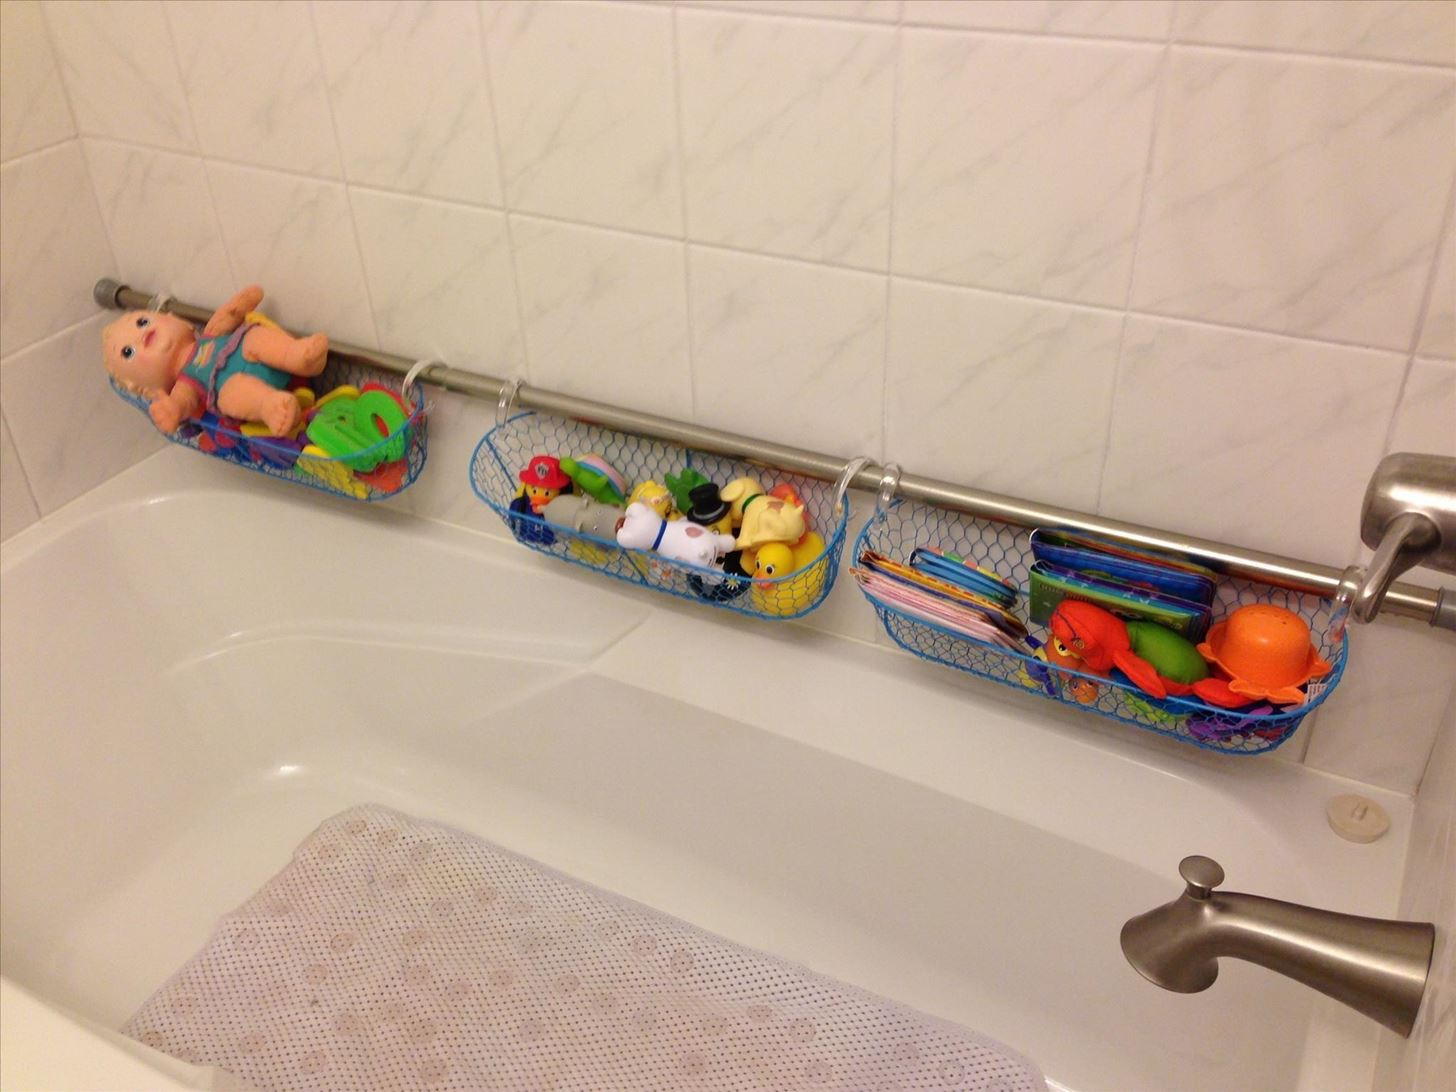 Use Extra Shower Curtain Rods To Increase Bathroom Storage